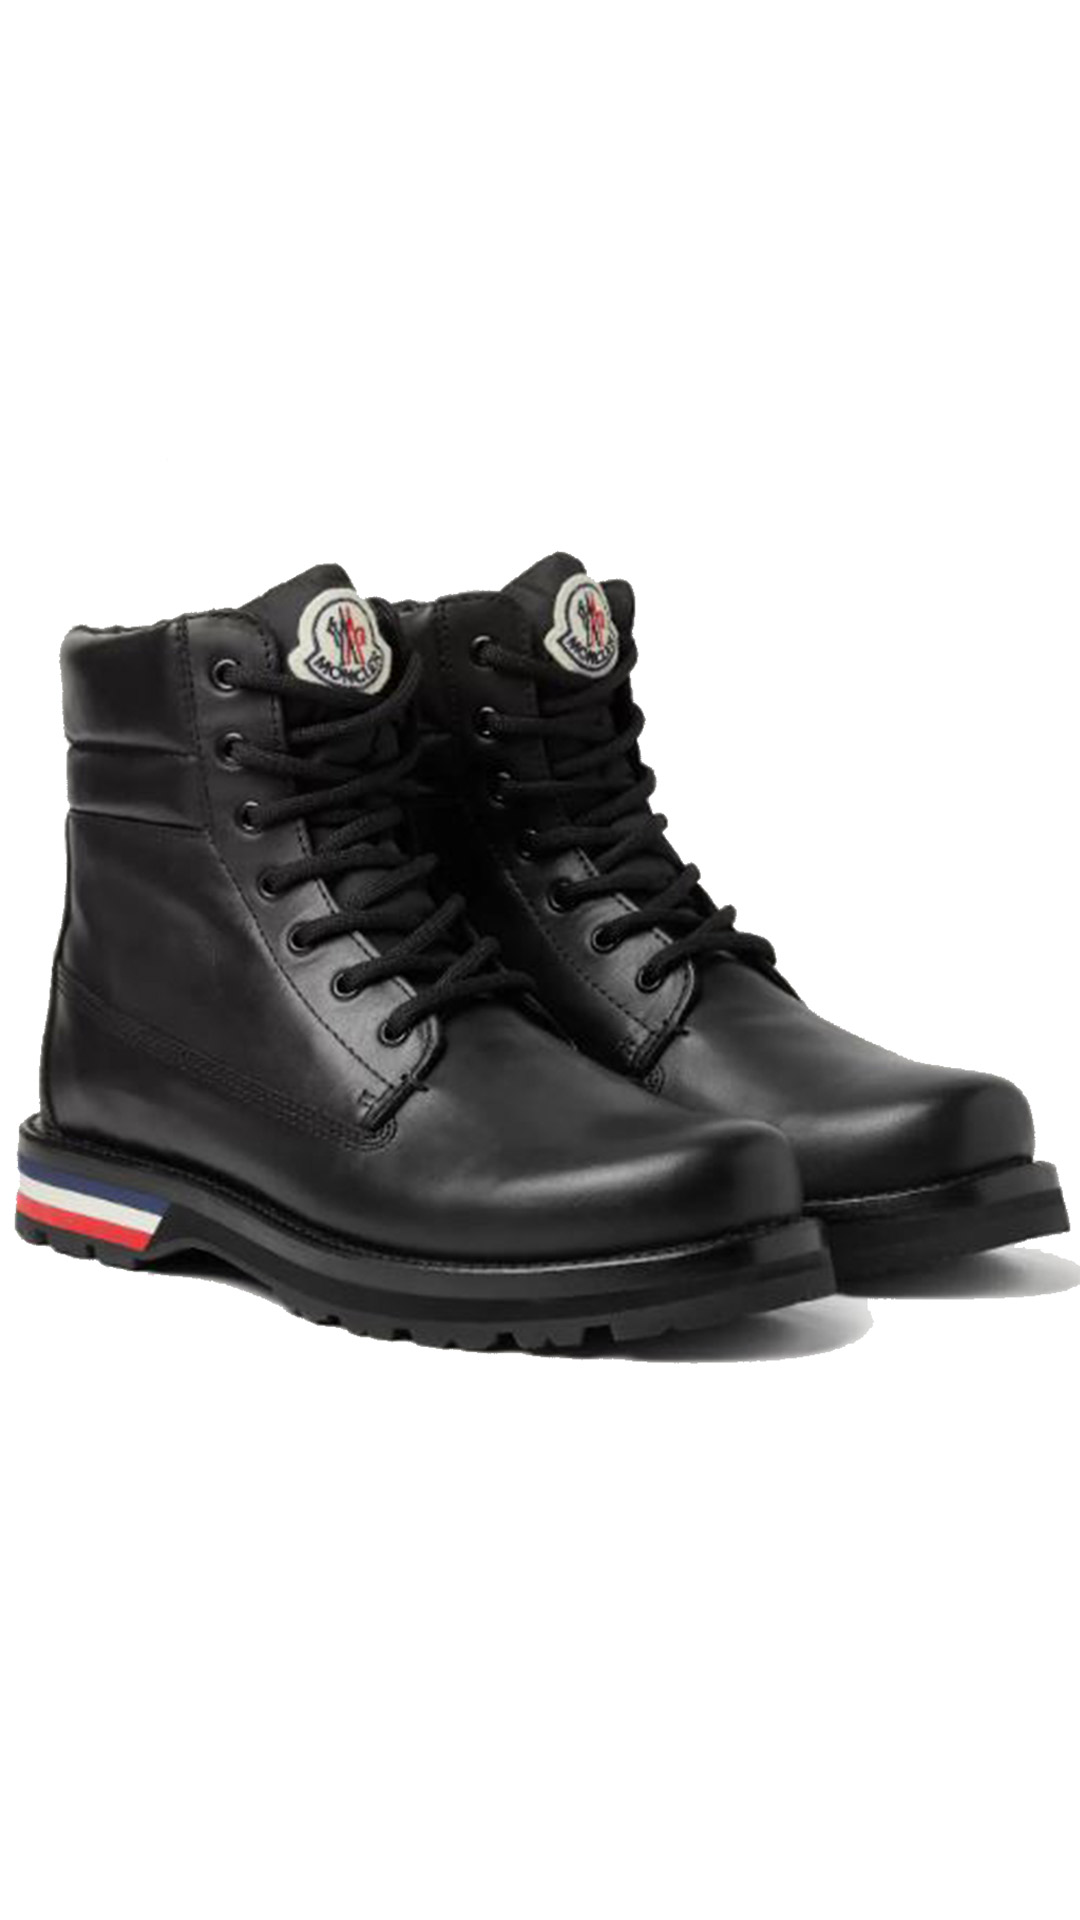 MONCLER Vancouver Hiking Boots